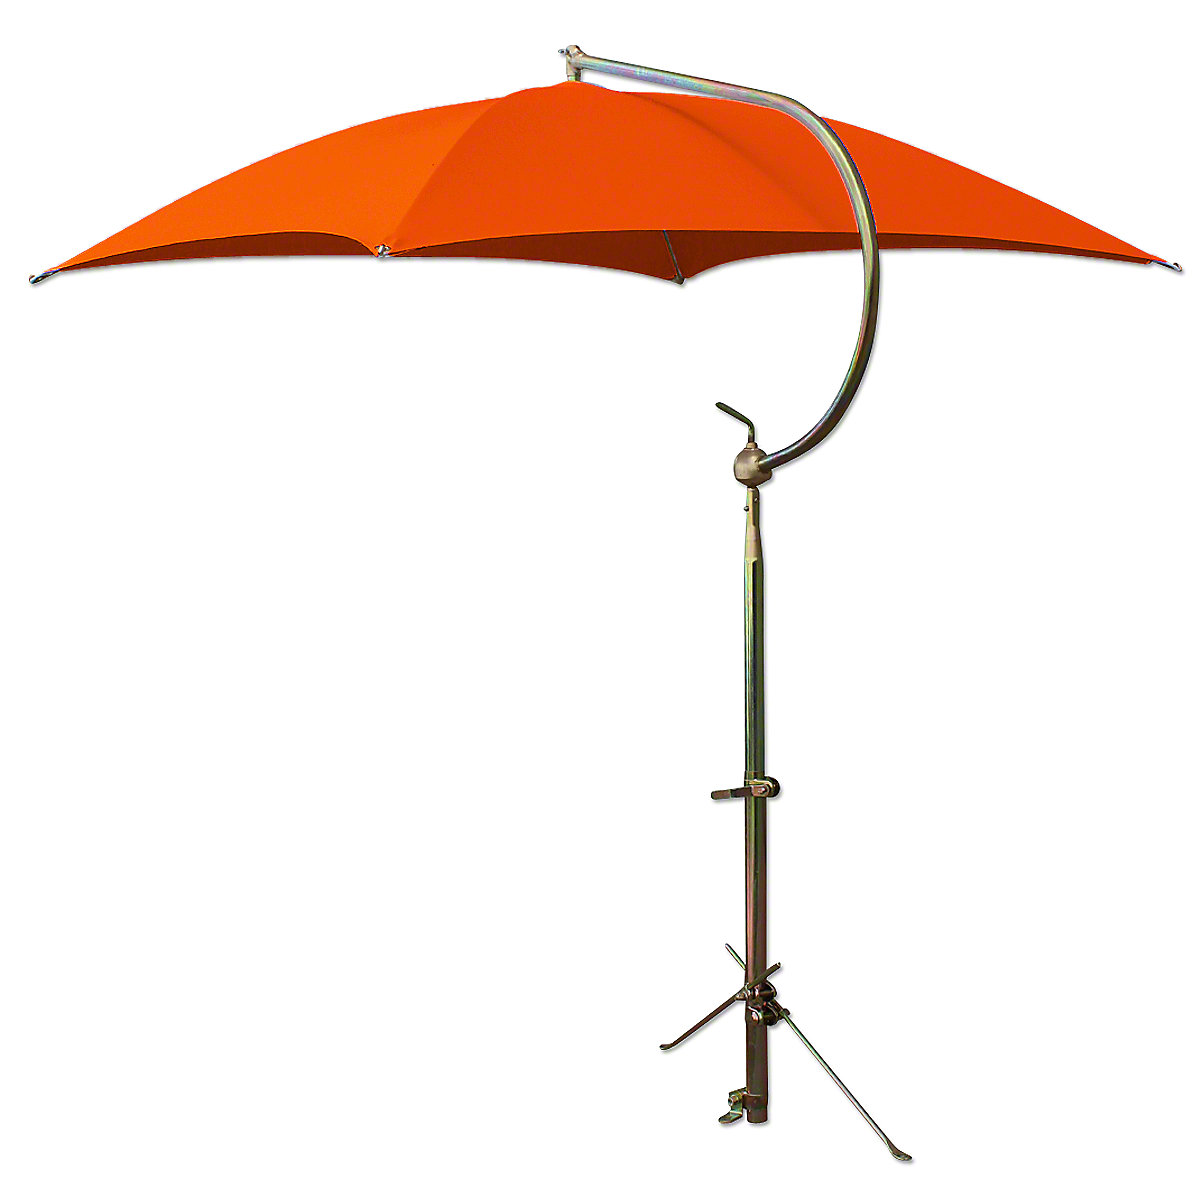 ABC2372 Deluxe Orange Umbrella with Brackets